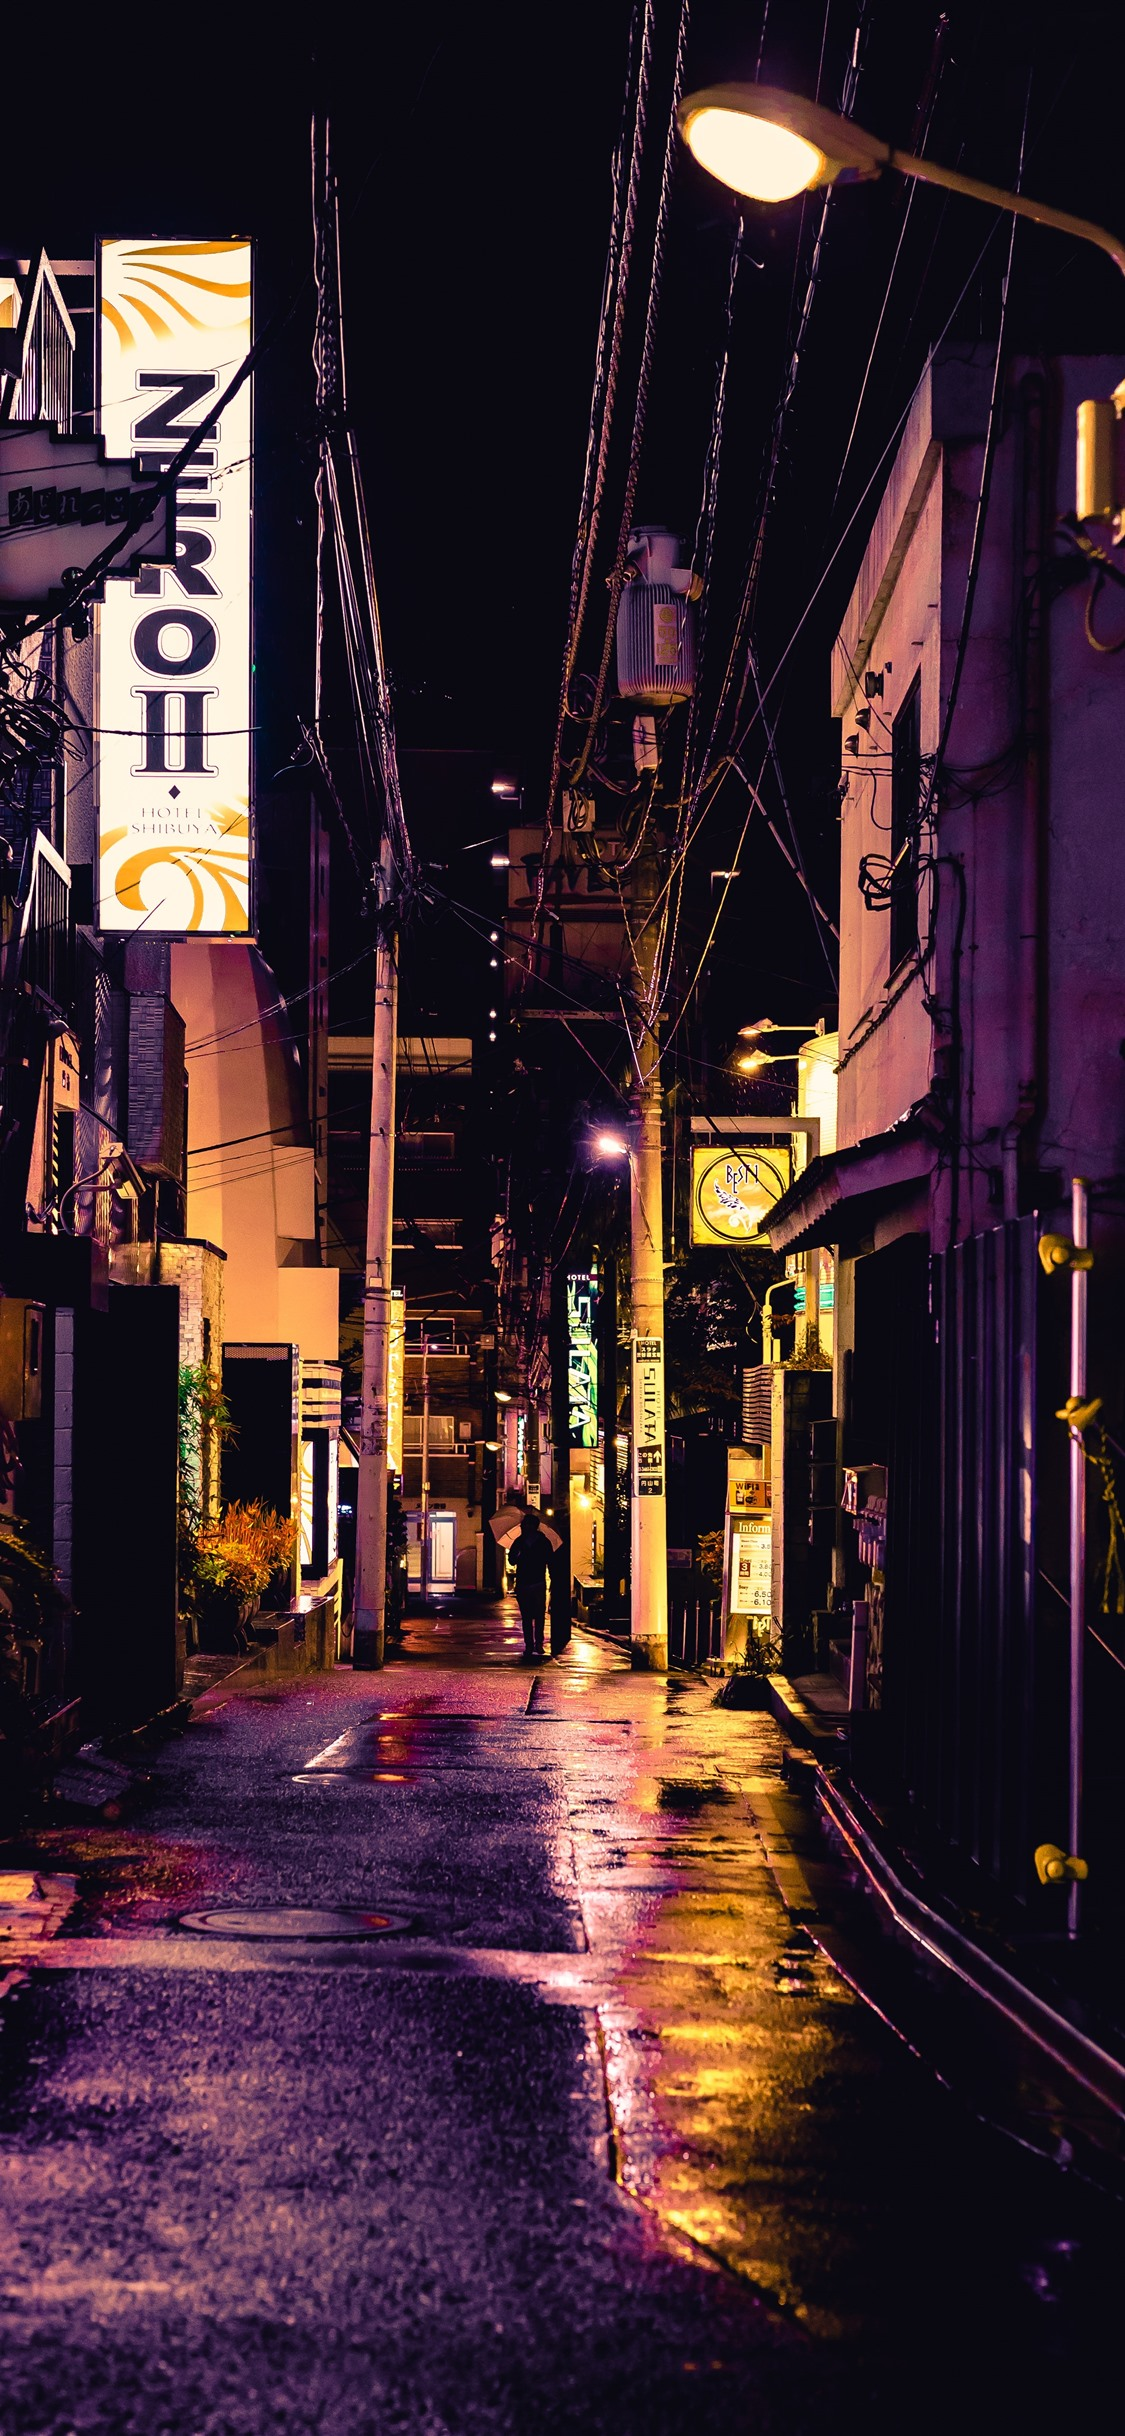 Wallpaper Street City Alley Night Lights Japan 3840x2160 Uhd 4k Picture Image